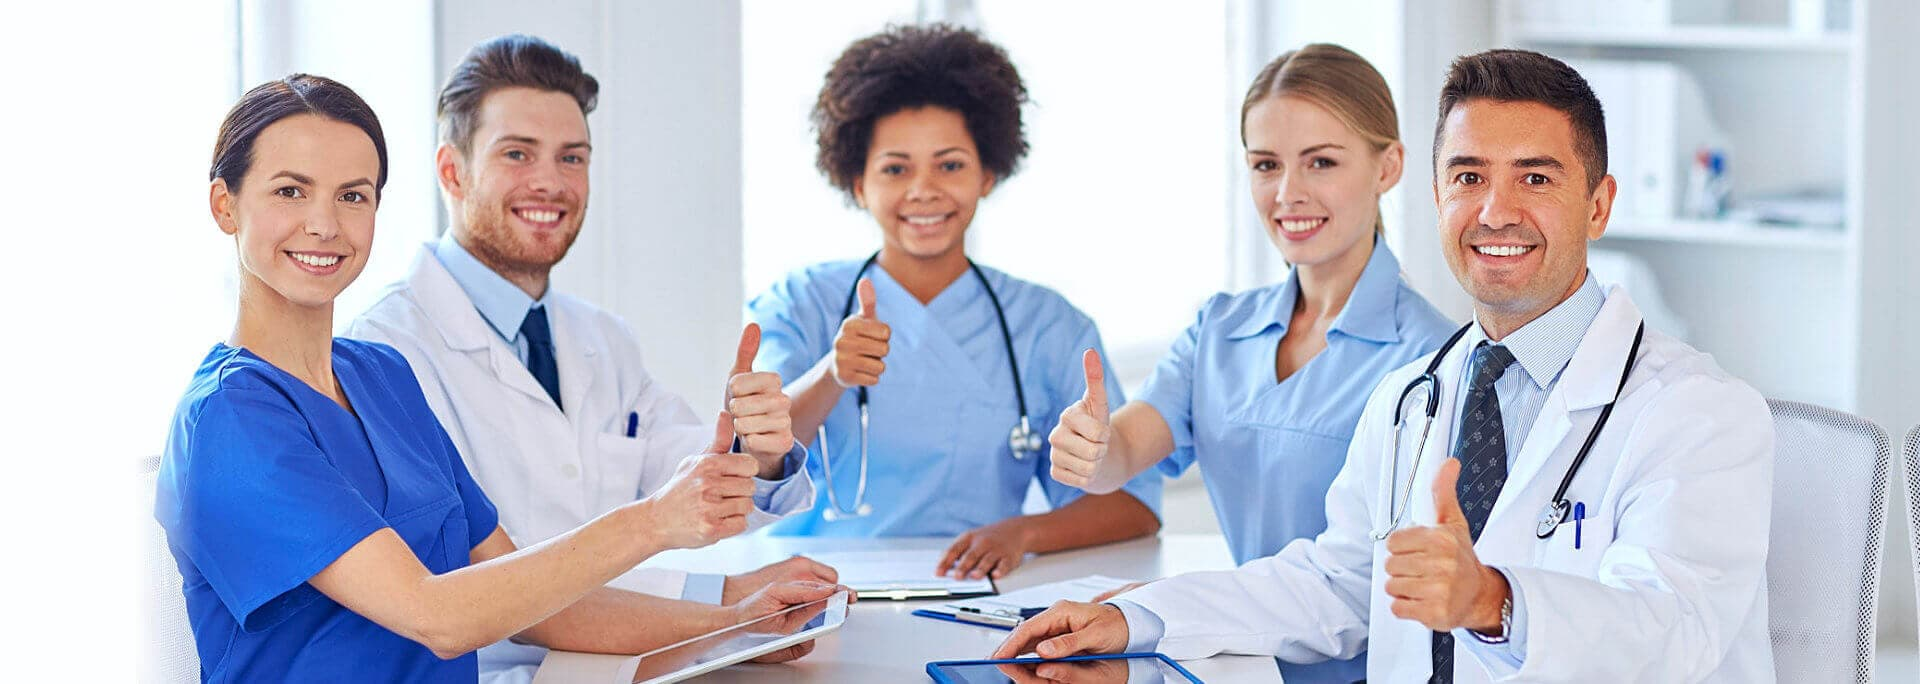 doctors and nurses smiling while thumbs up